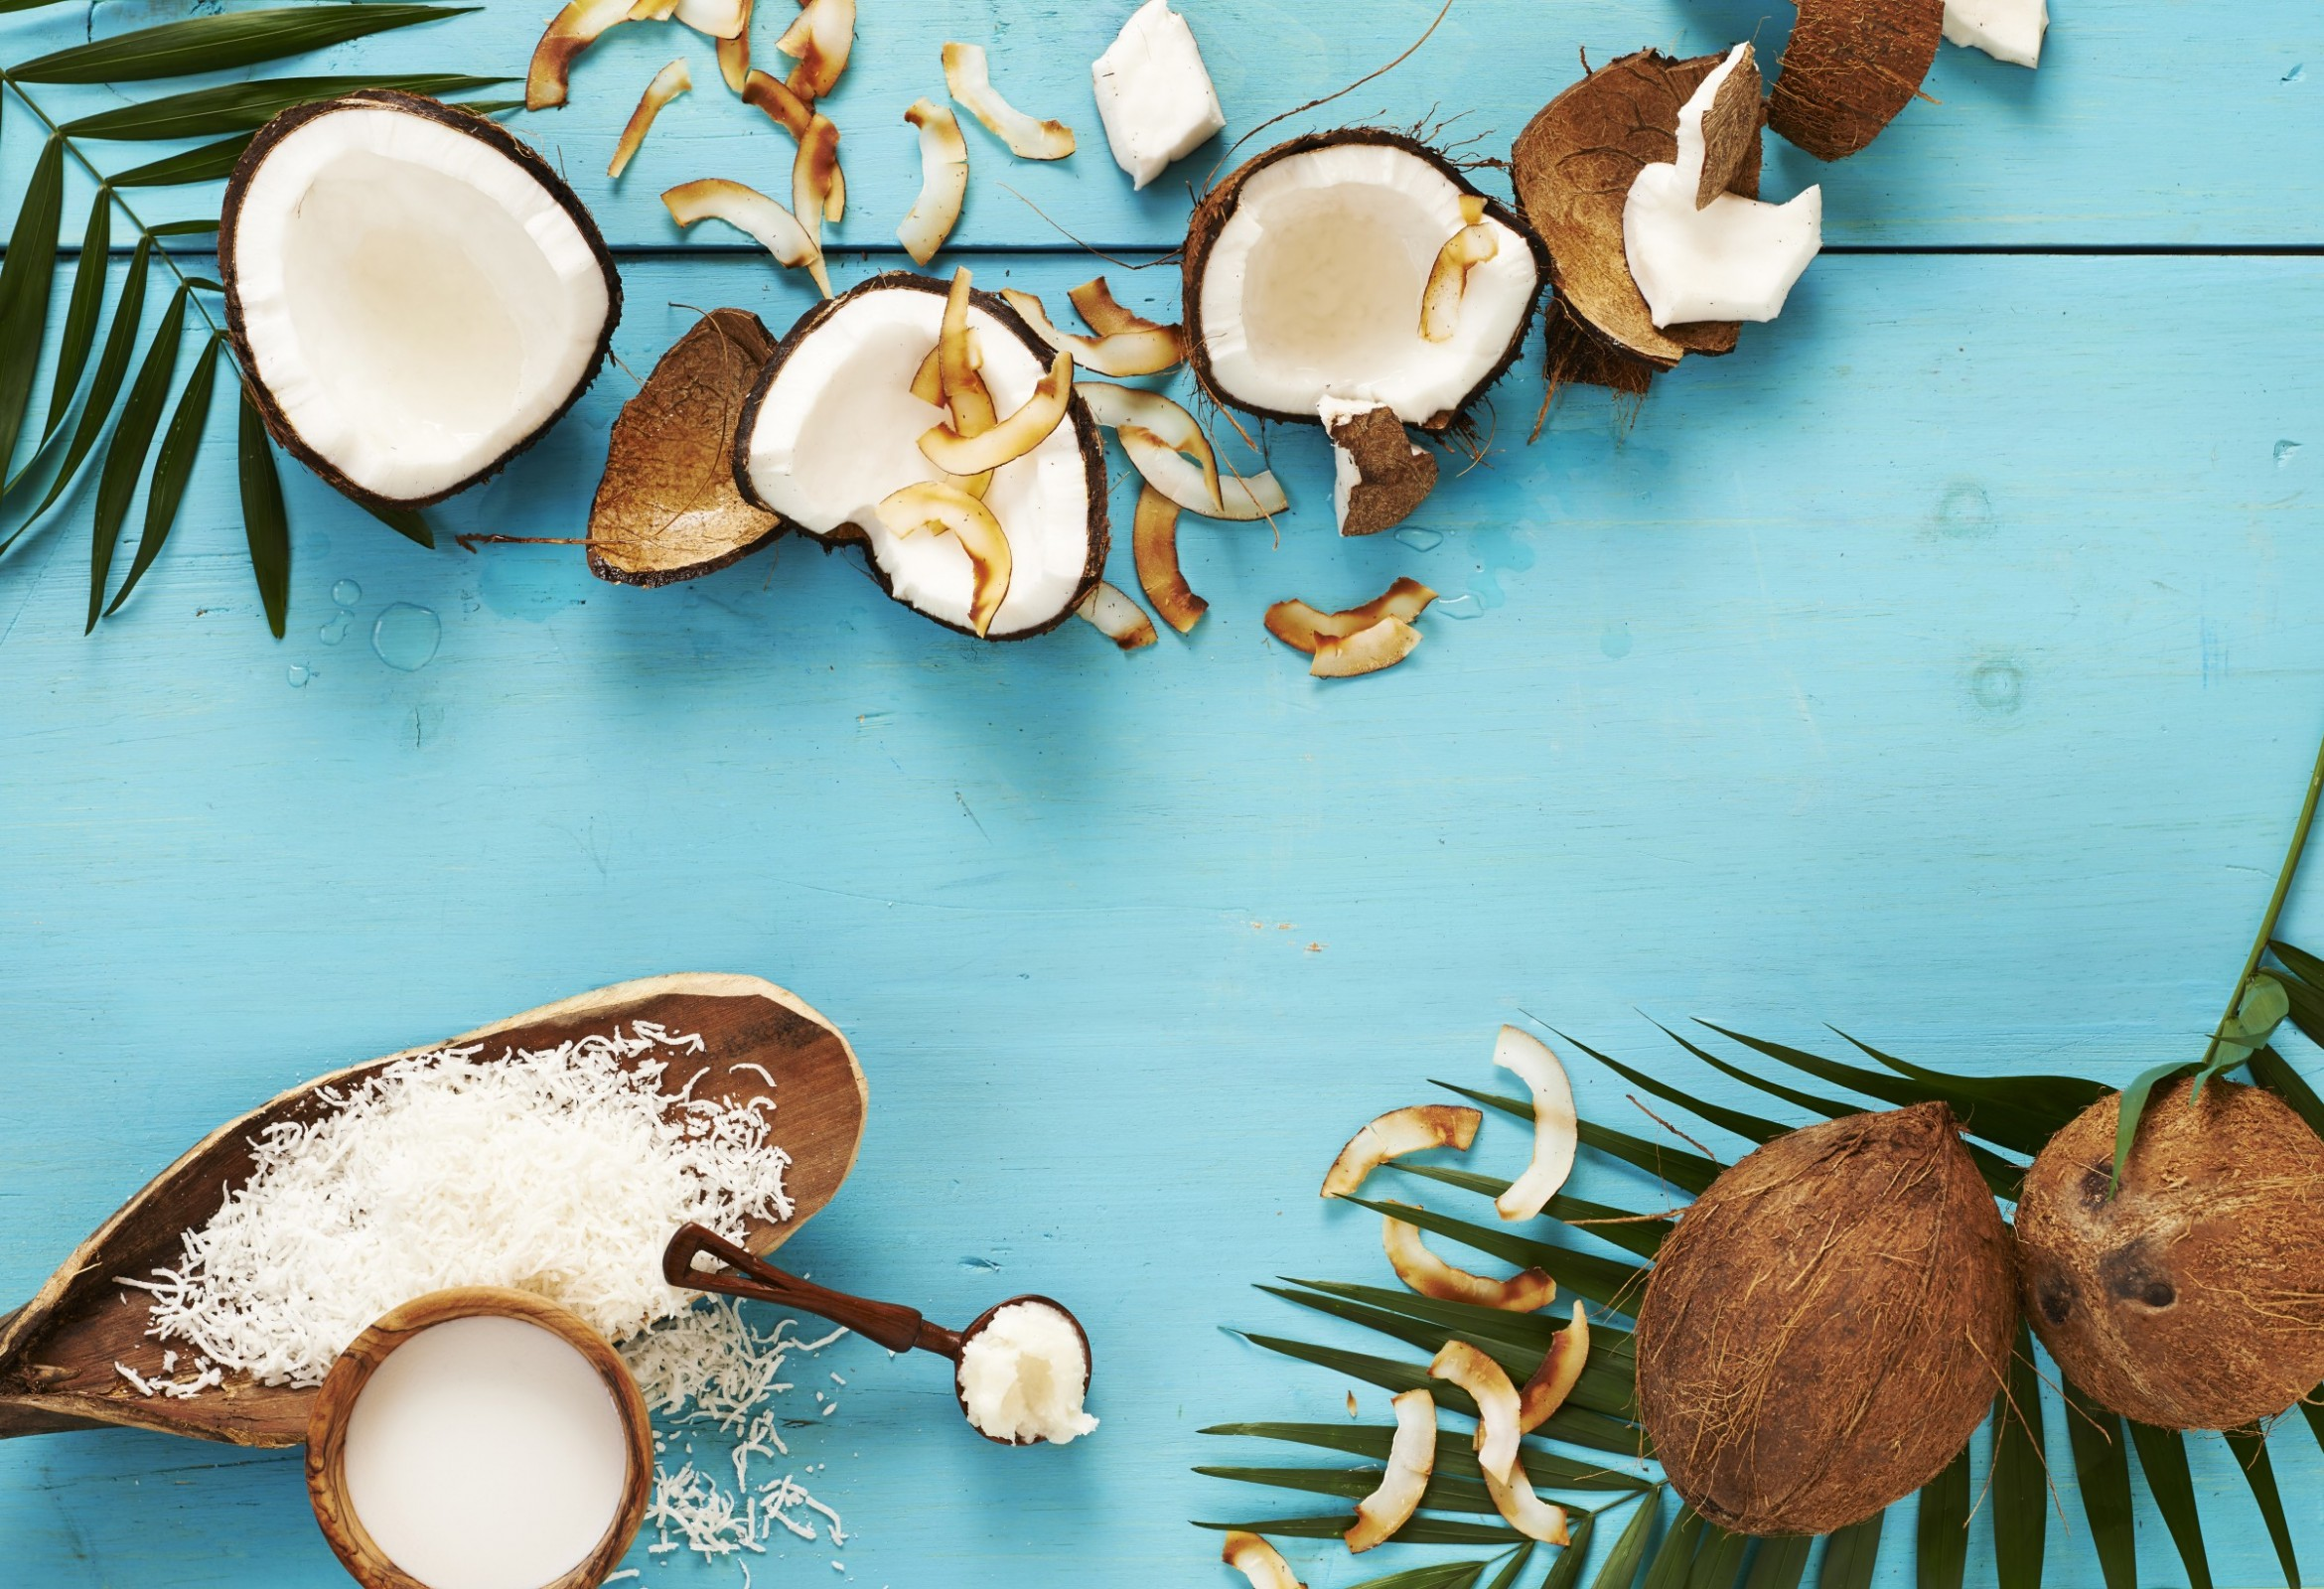 On Trend: Coconut Oil